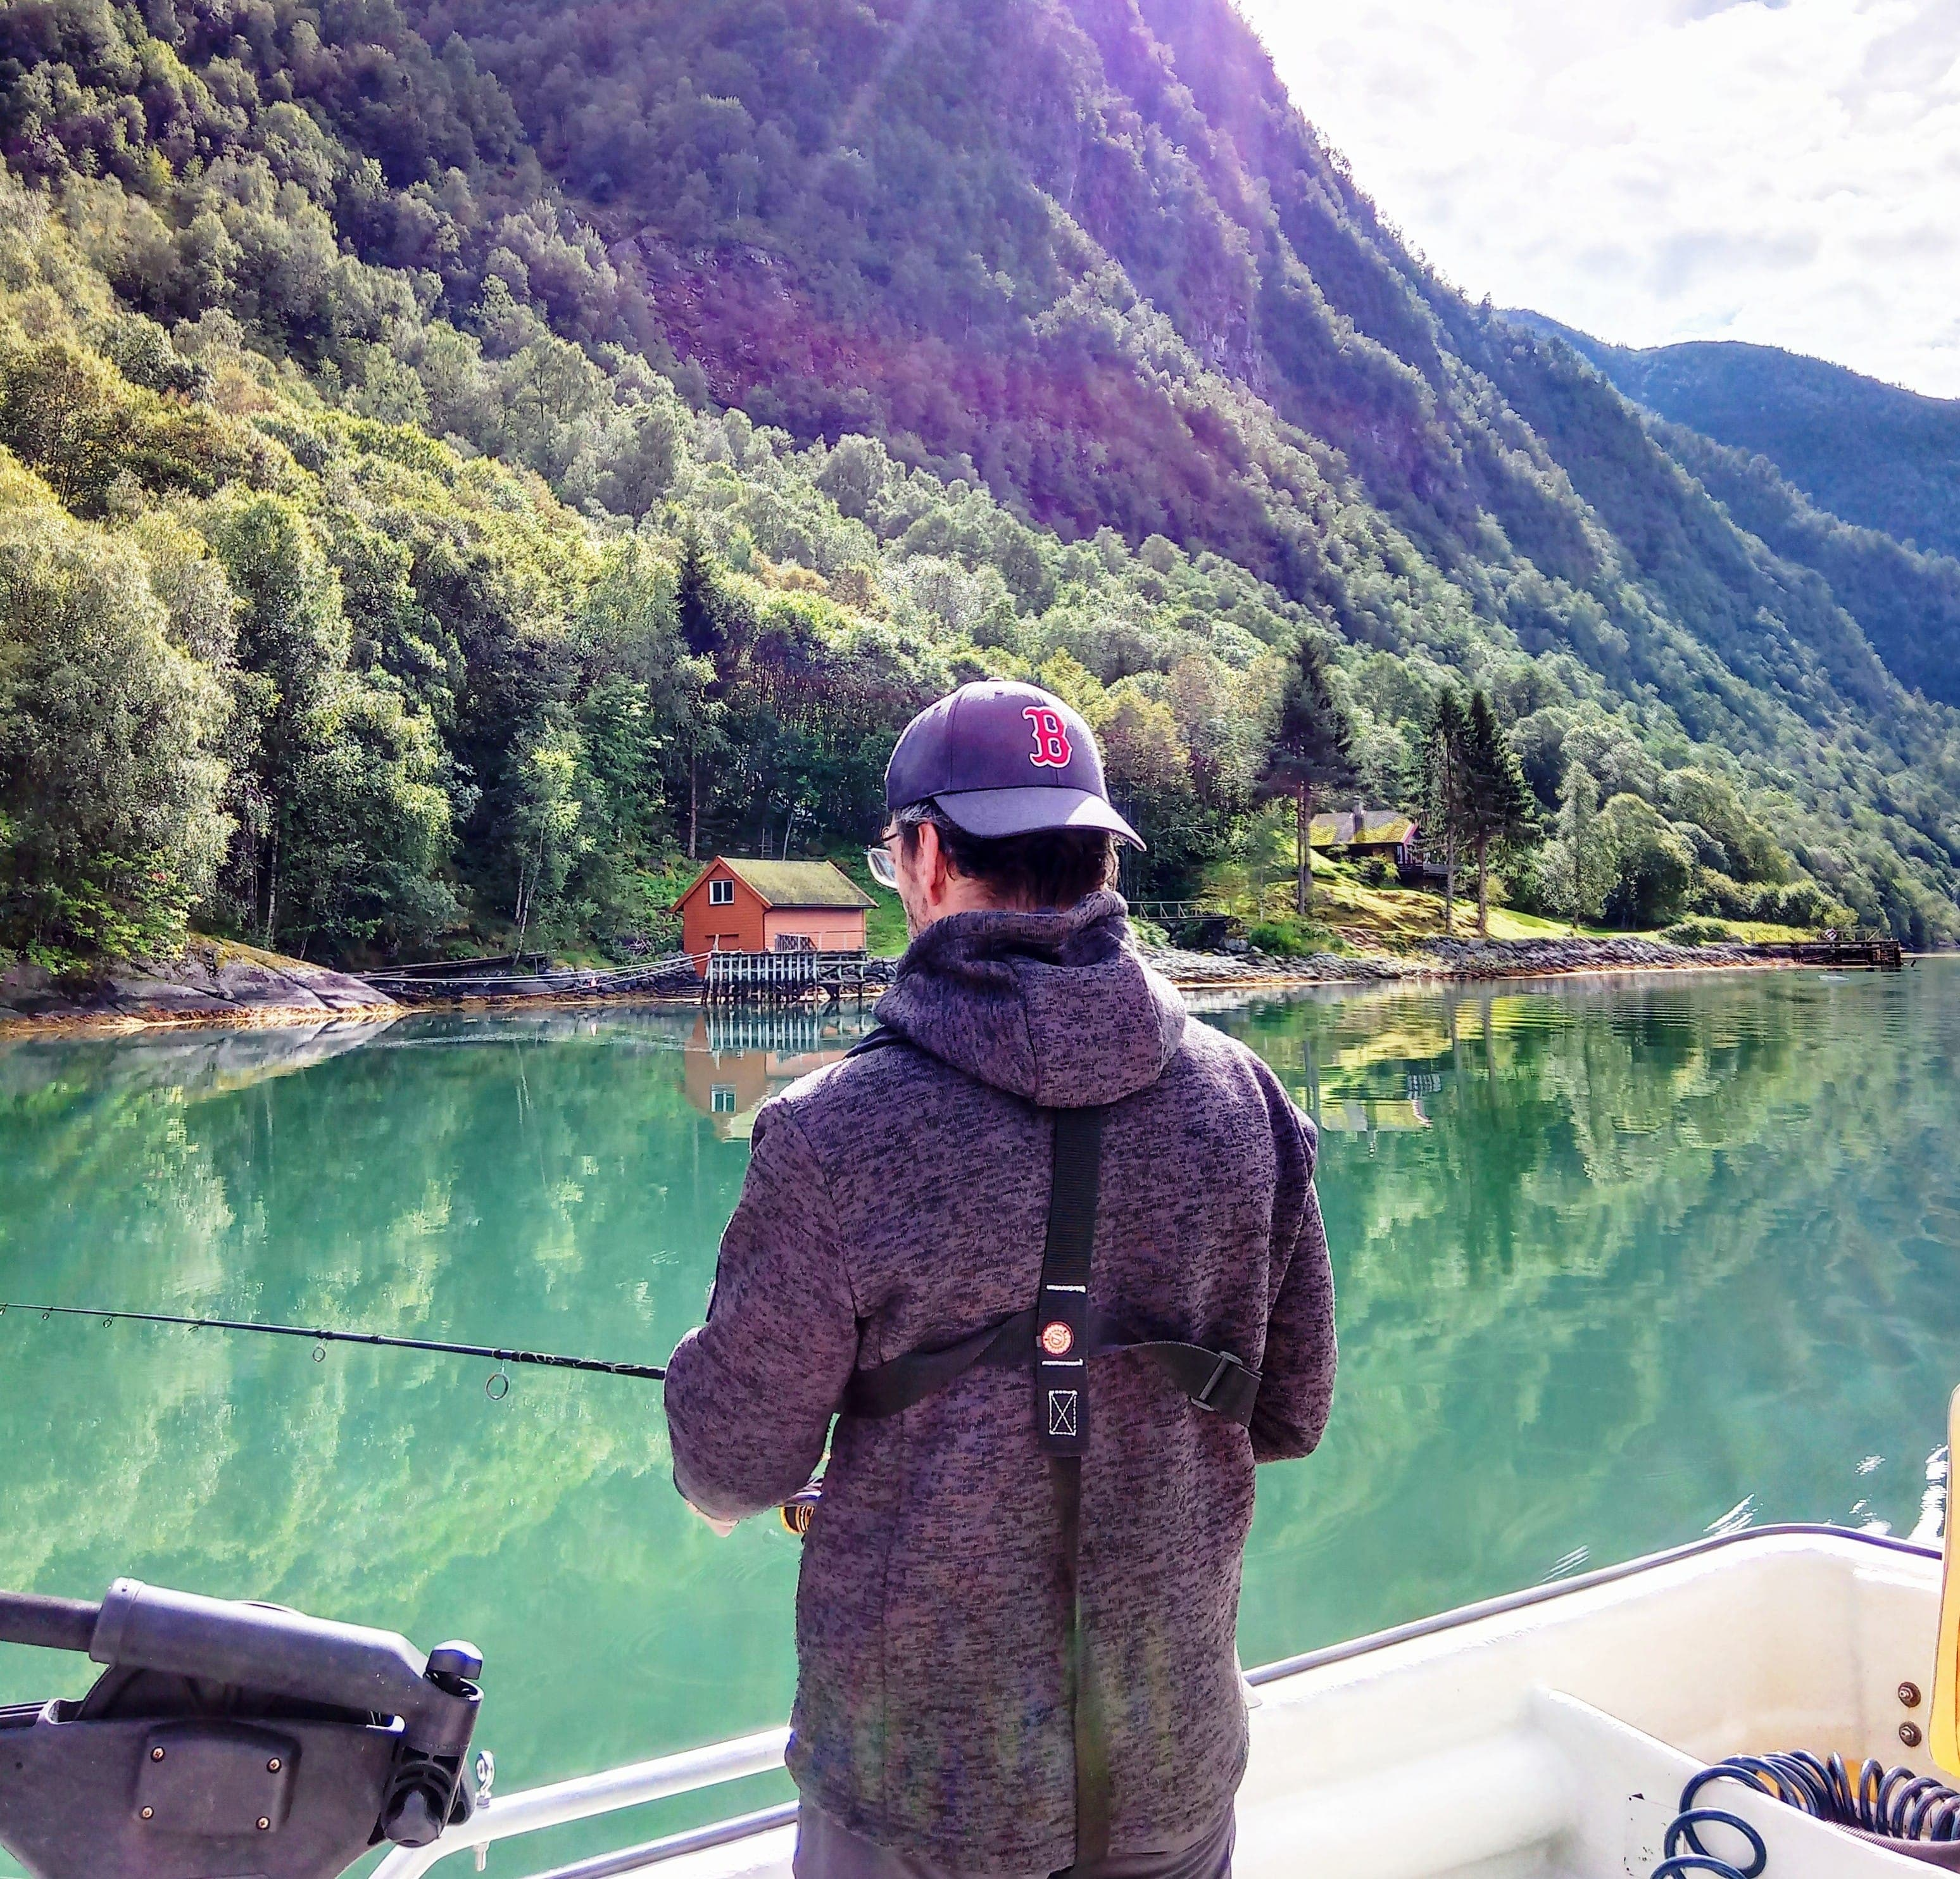 Balestrand Fjord Angling & Trolling - The Genuine fjord experience!